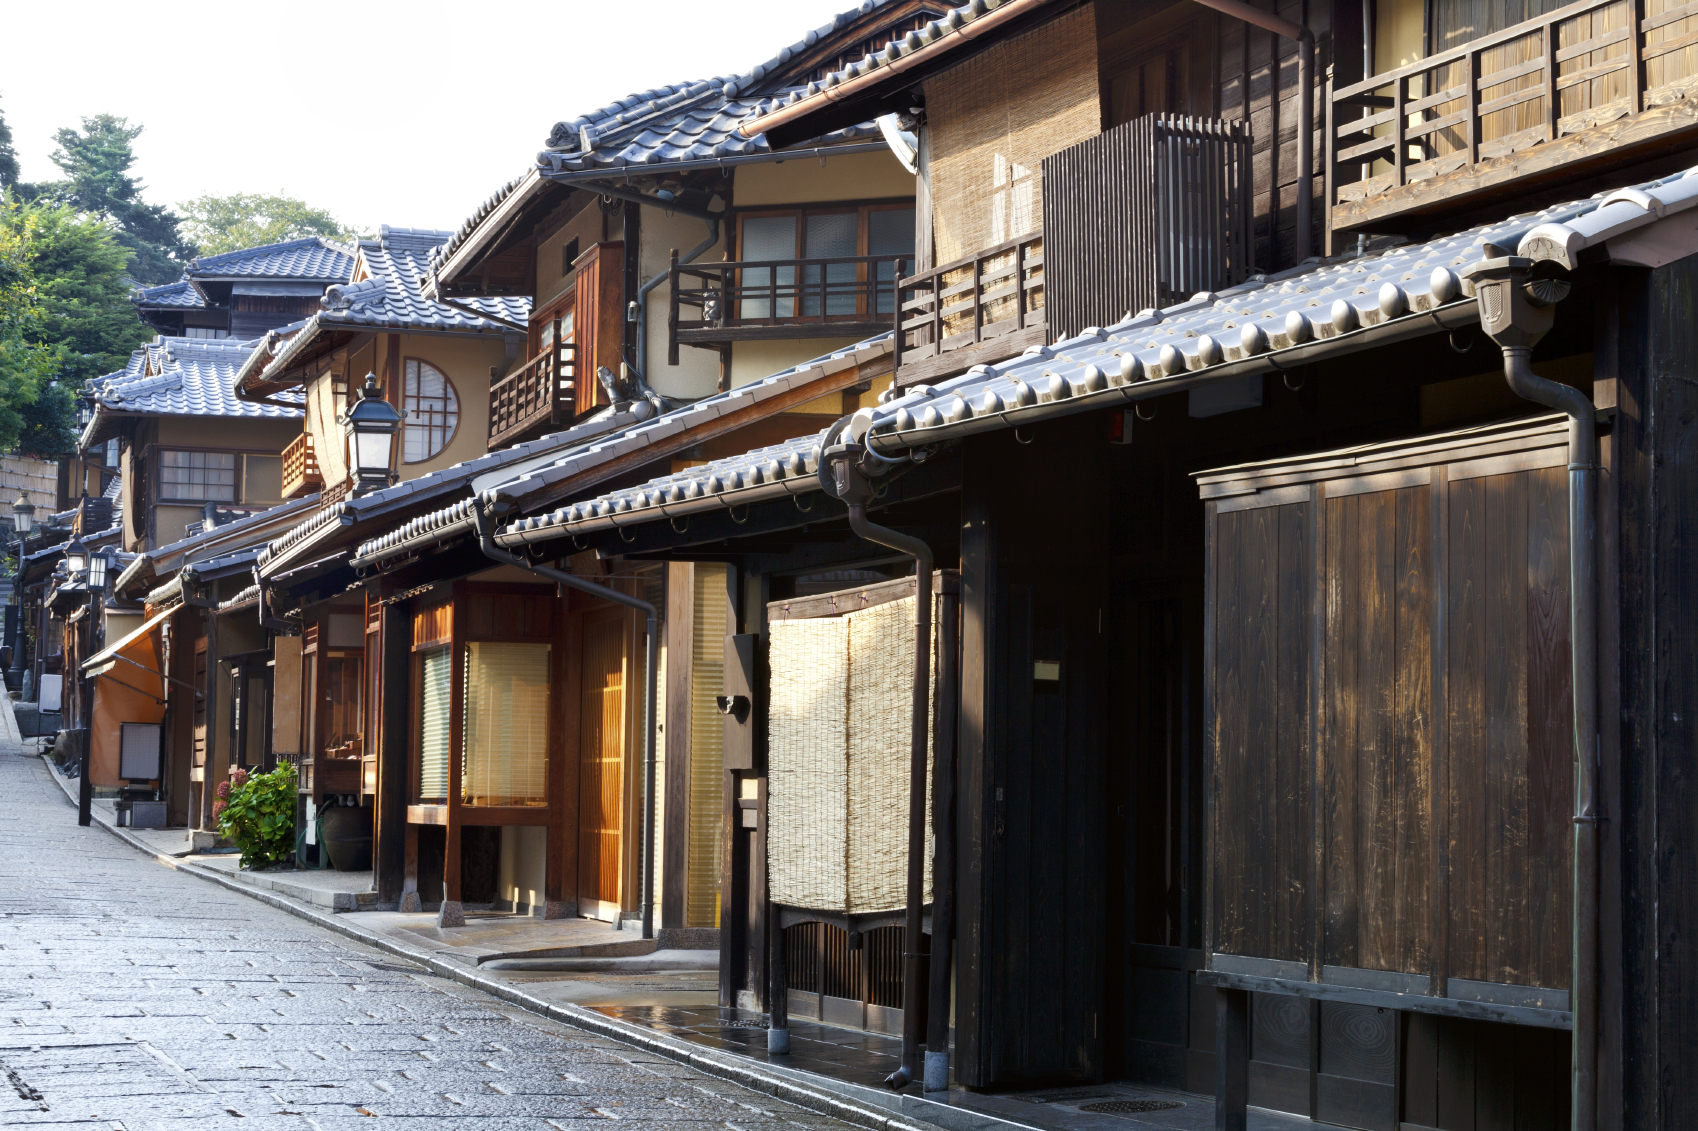 Street of old wooden houses in historic Kyoto Japan